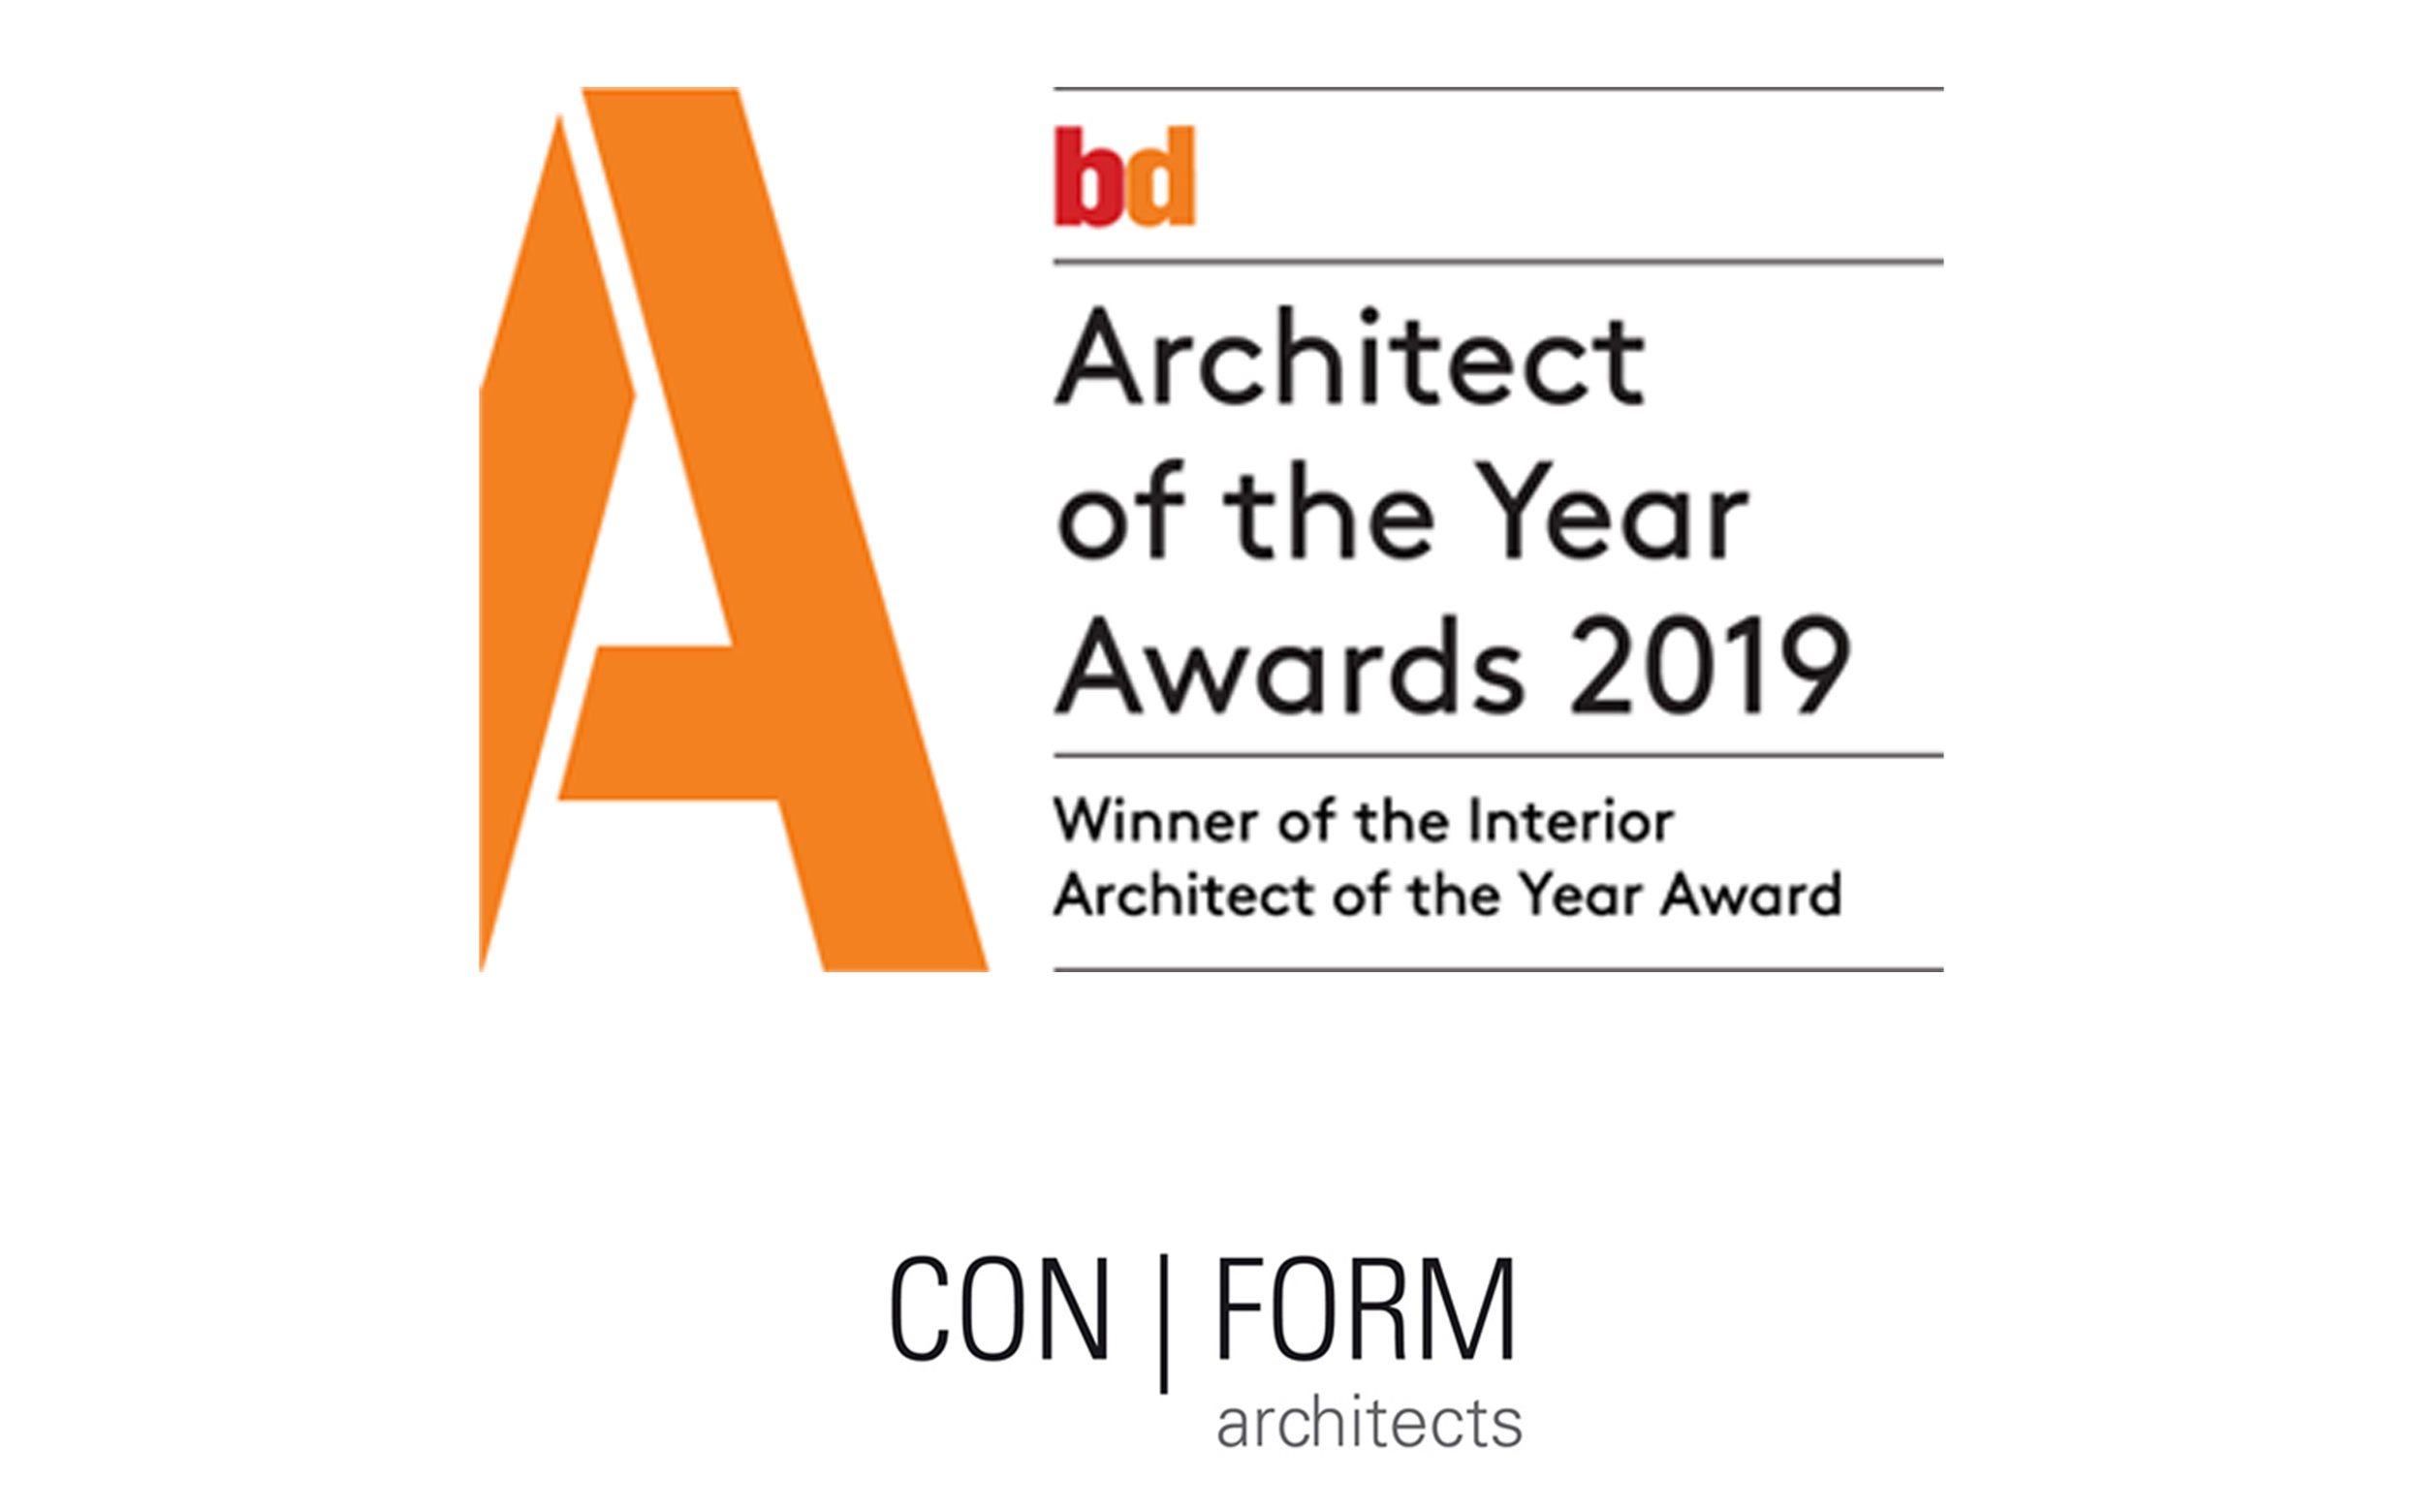 con I form _ architects_AYA Interior 2019 _ Landscape.jpg